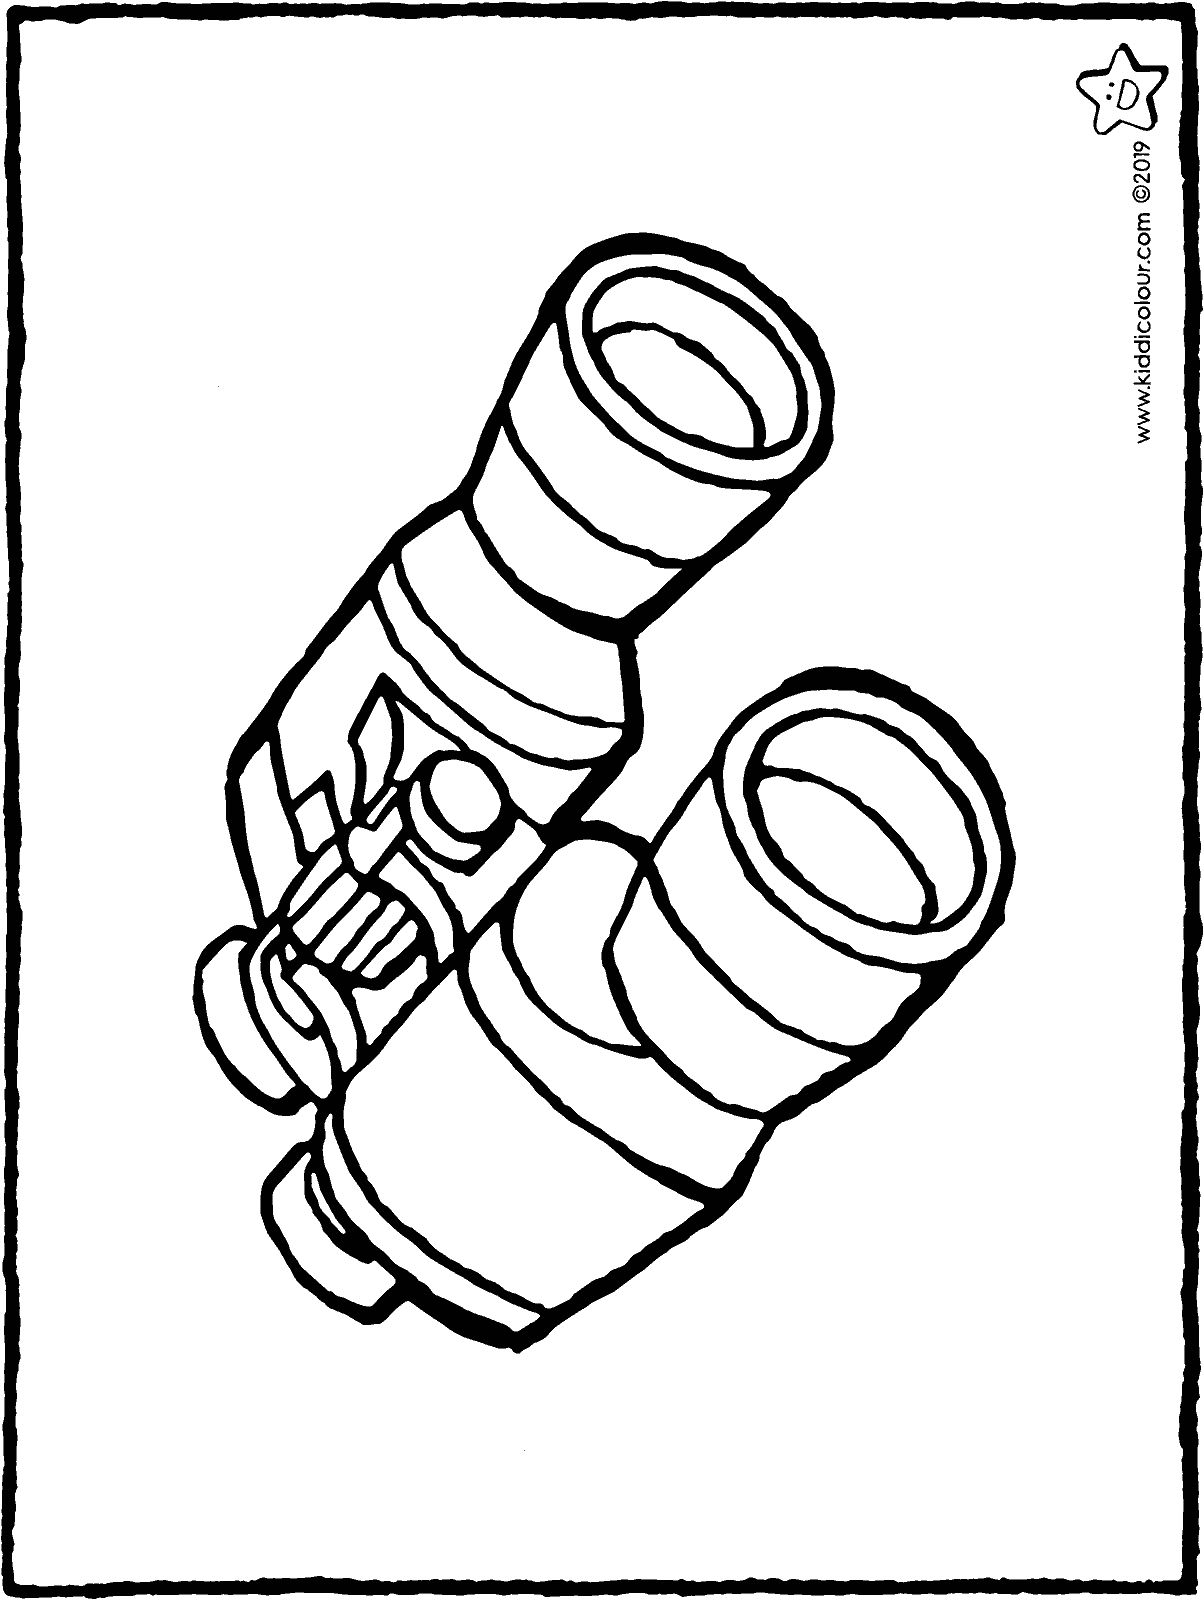 binoculars colouring page drawing picture 01H